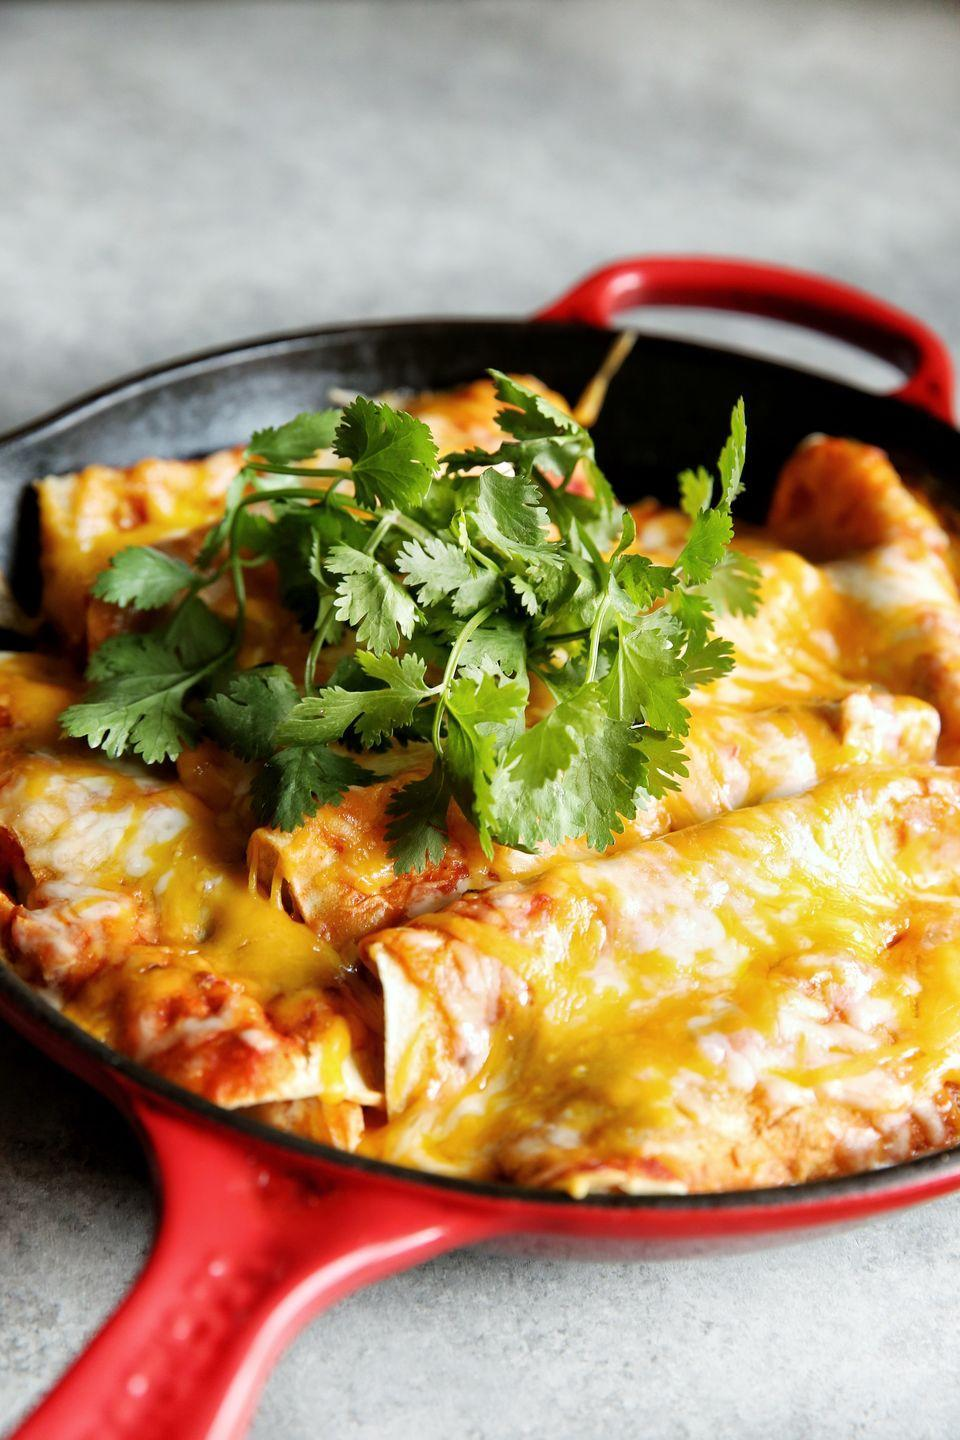 """<p>Make a habit out of these Mexican chicken roll-ups.</p><p>Get the recipe from <a href=""""https://www.delish.com/cooking/recipe-ideas/a49105/cheesy-chicken-enchiladas-recipe/"""" rel=""""nofollow noopener"""" target=""""_blank"""" data-ylk=""""slk:Delish"""" class=""""link rapid-noclick-resp"""">Delish</a>.</p>"""